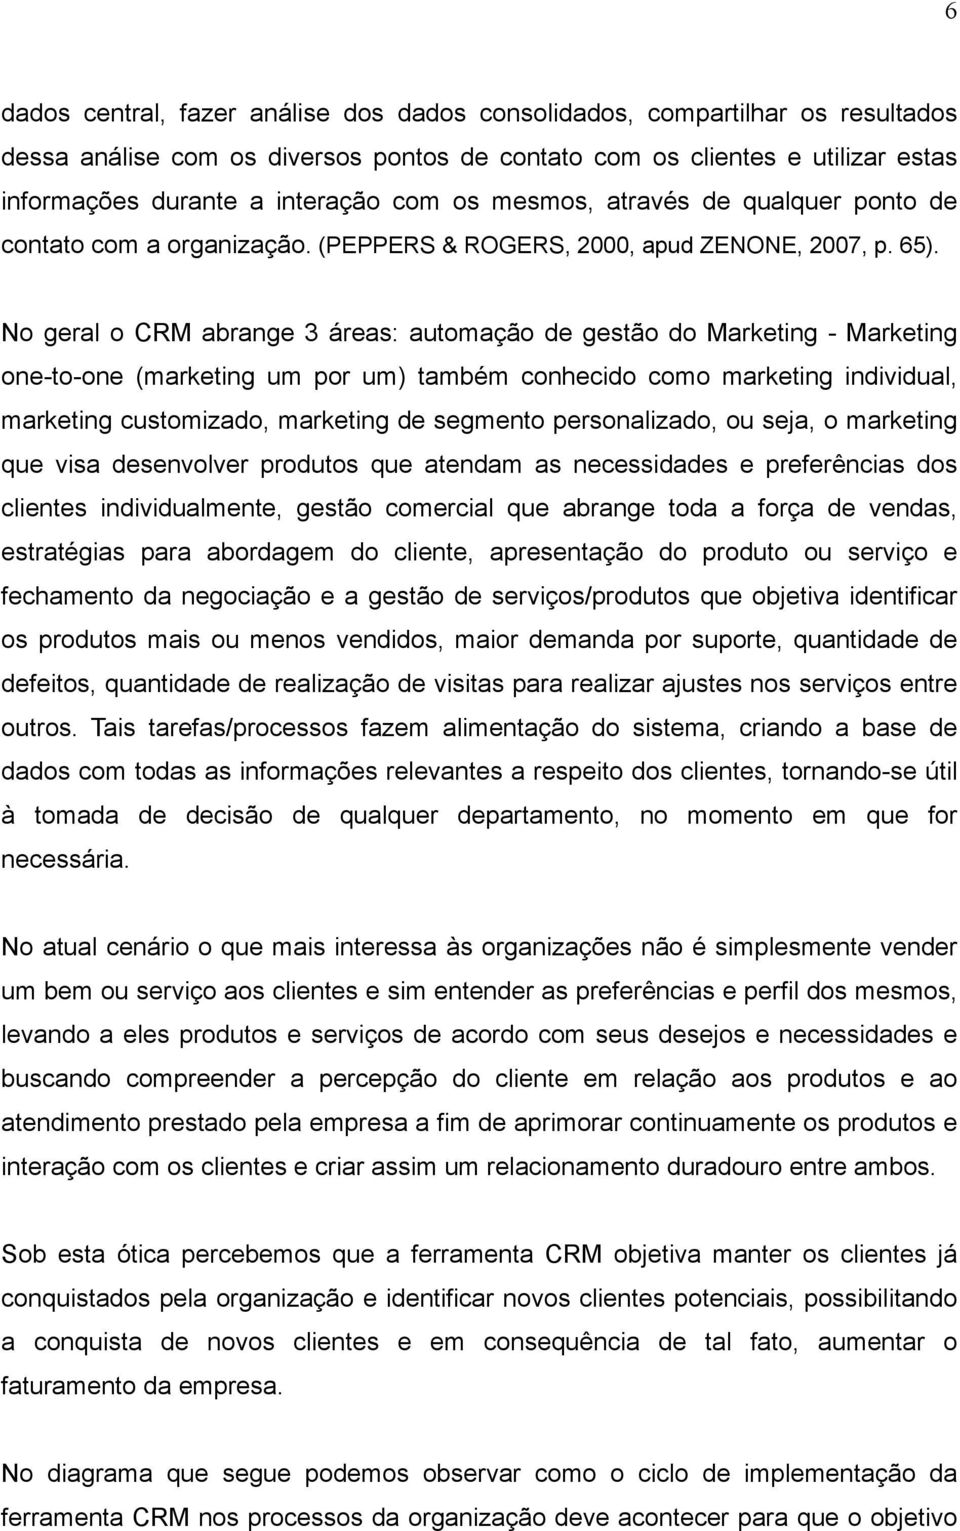 No geral o CRM abrange 3 áreas: automação de gestão do Marketing - Marketing one-to-one (marketing um por um) também conhecido como marketing individual, marketing customizado, marketing de segmento